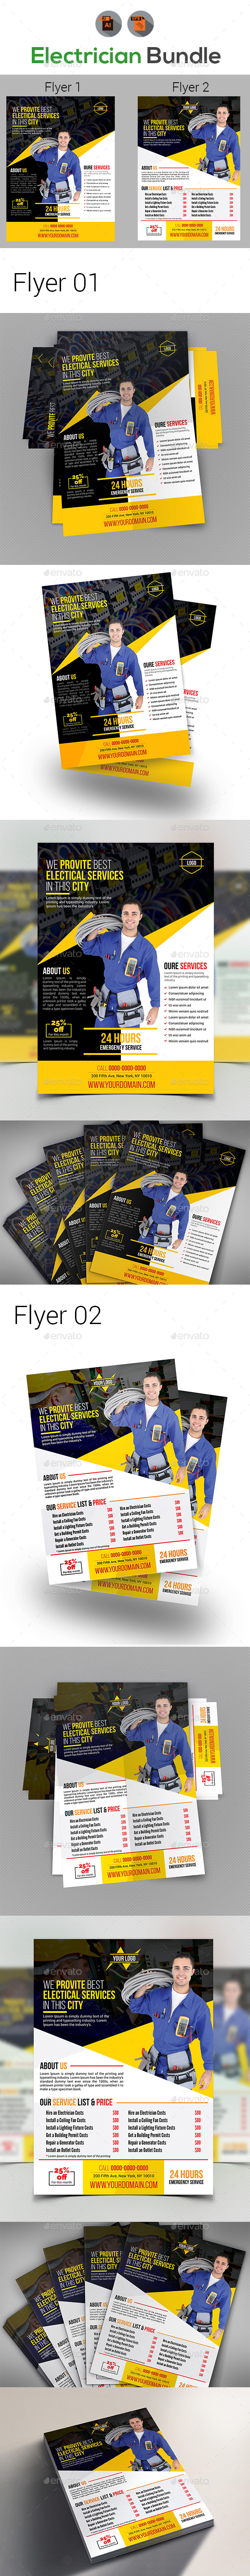 Electrical Services Flyers Templates - Corporate Flyers